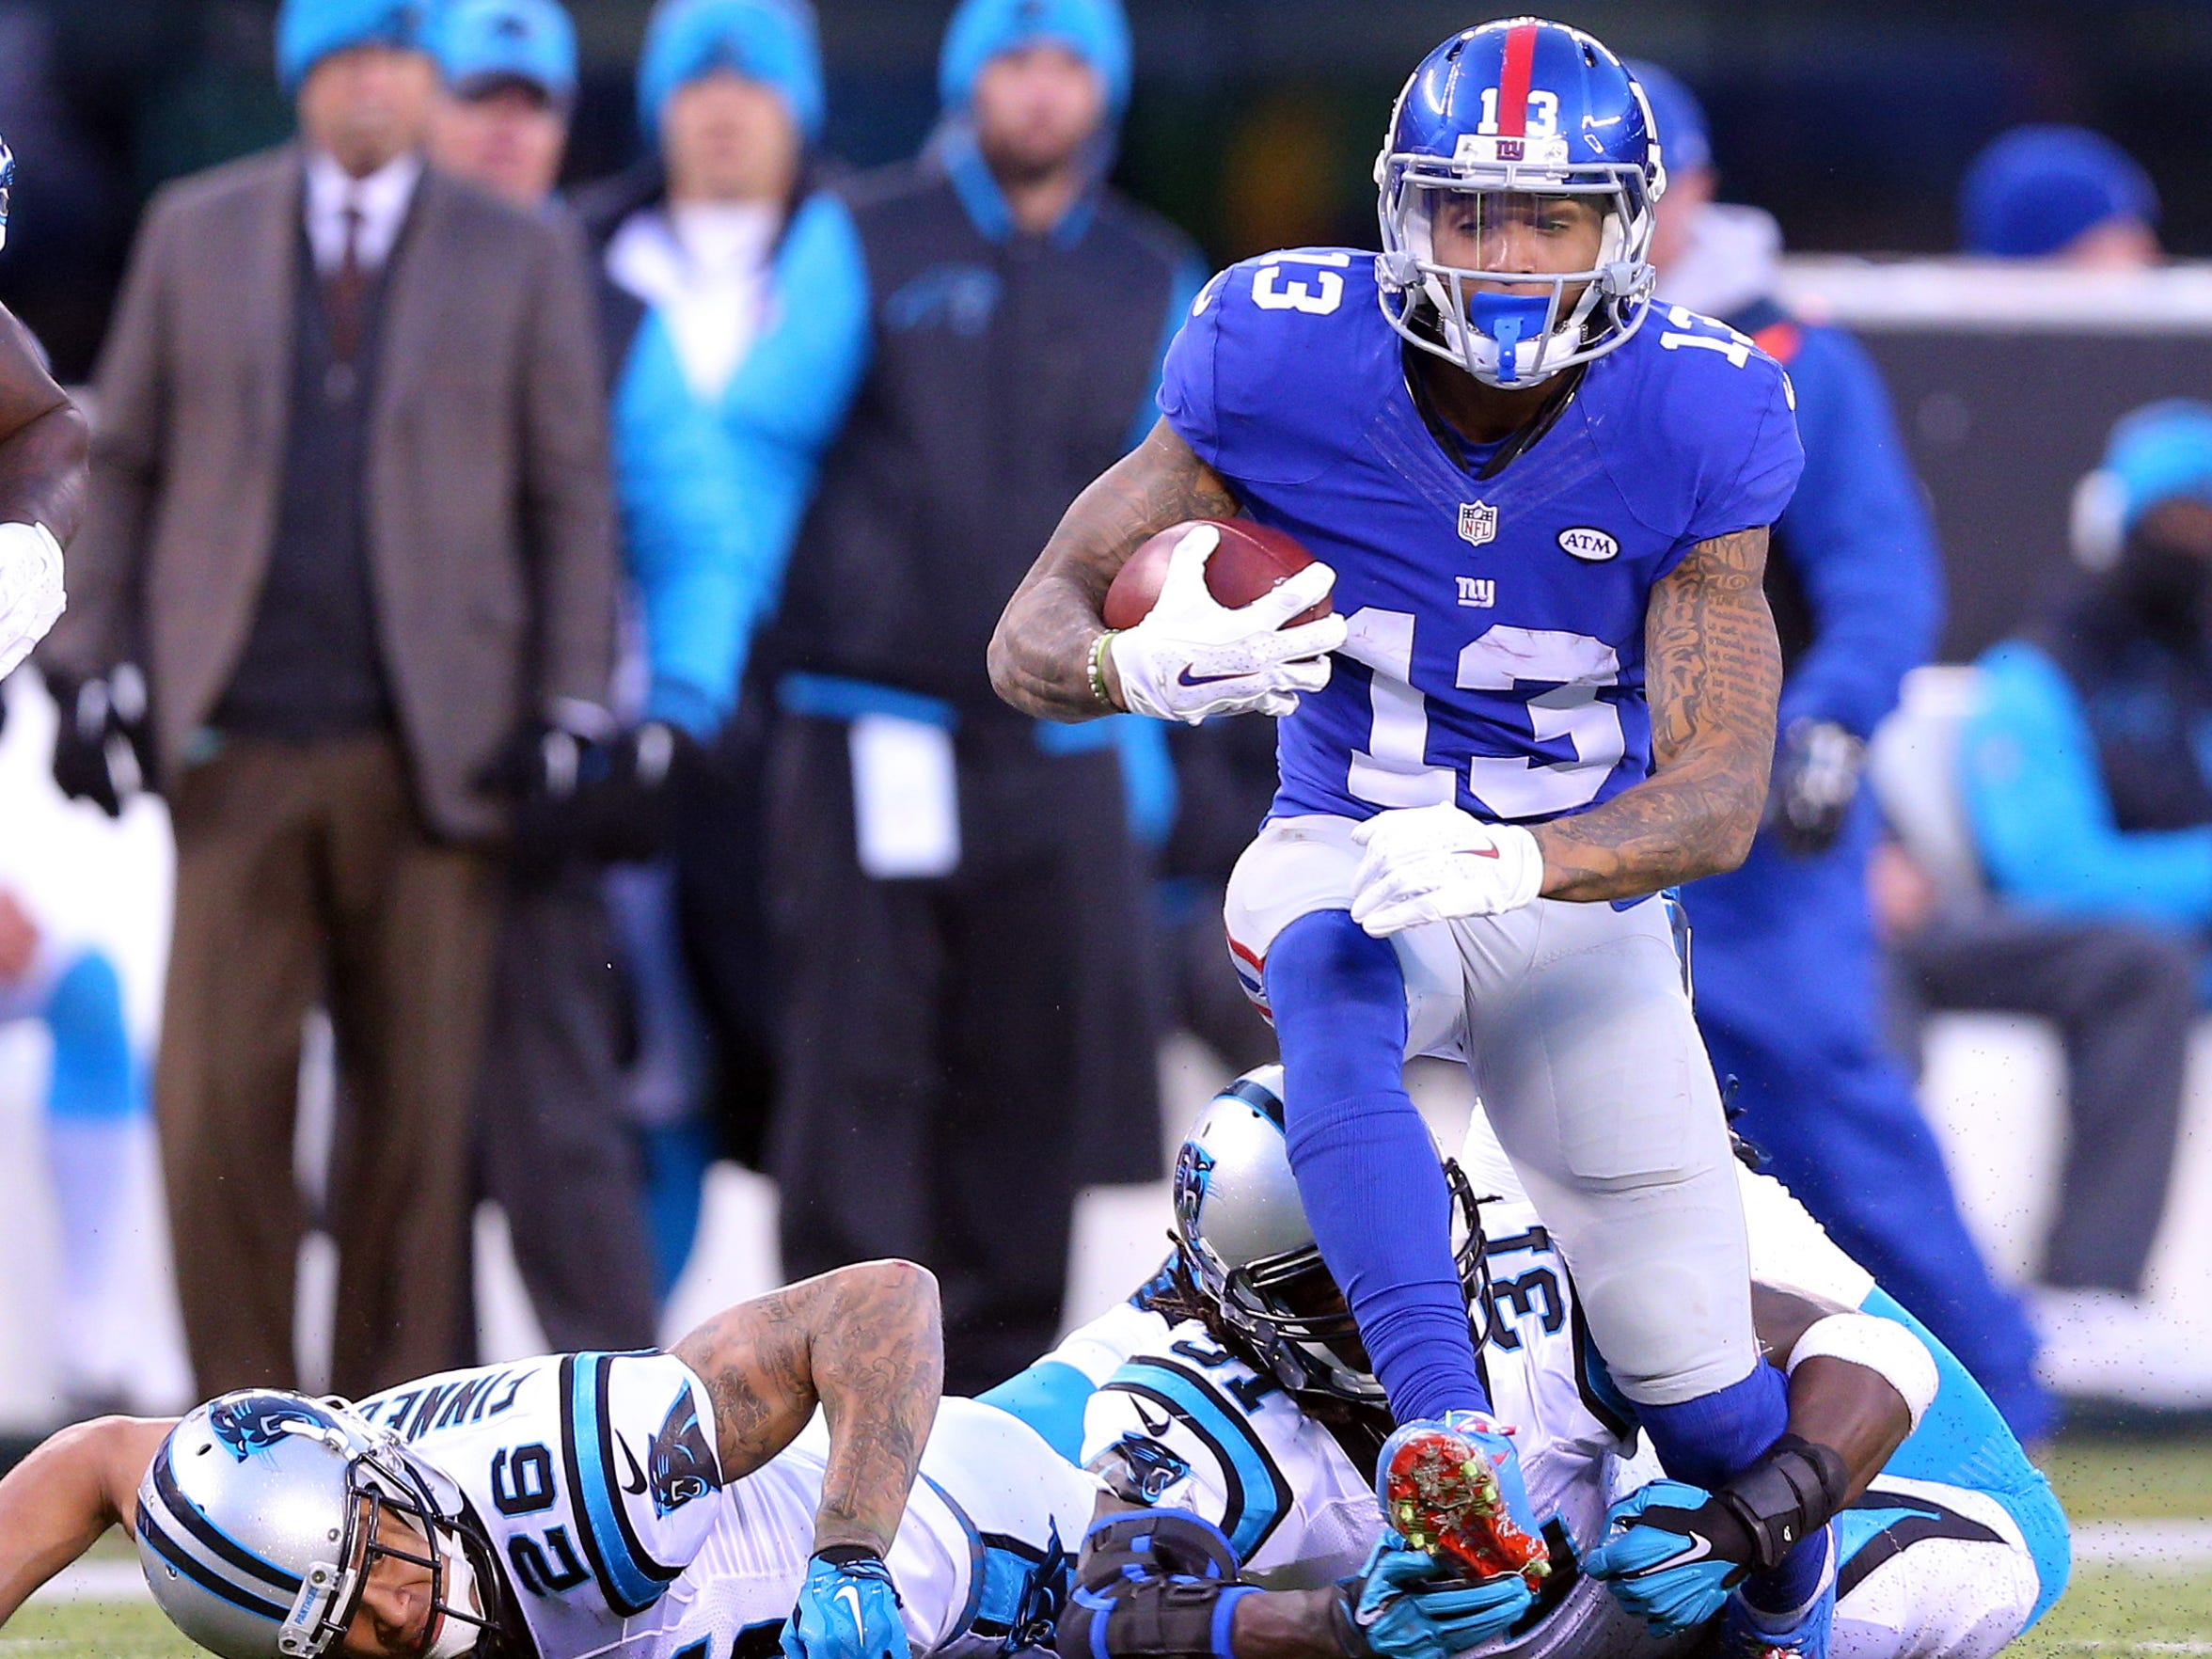 Odell Beckham junior lands at No. 45 on our list of